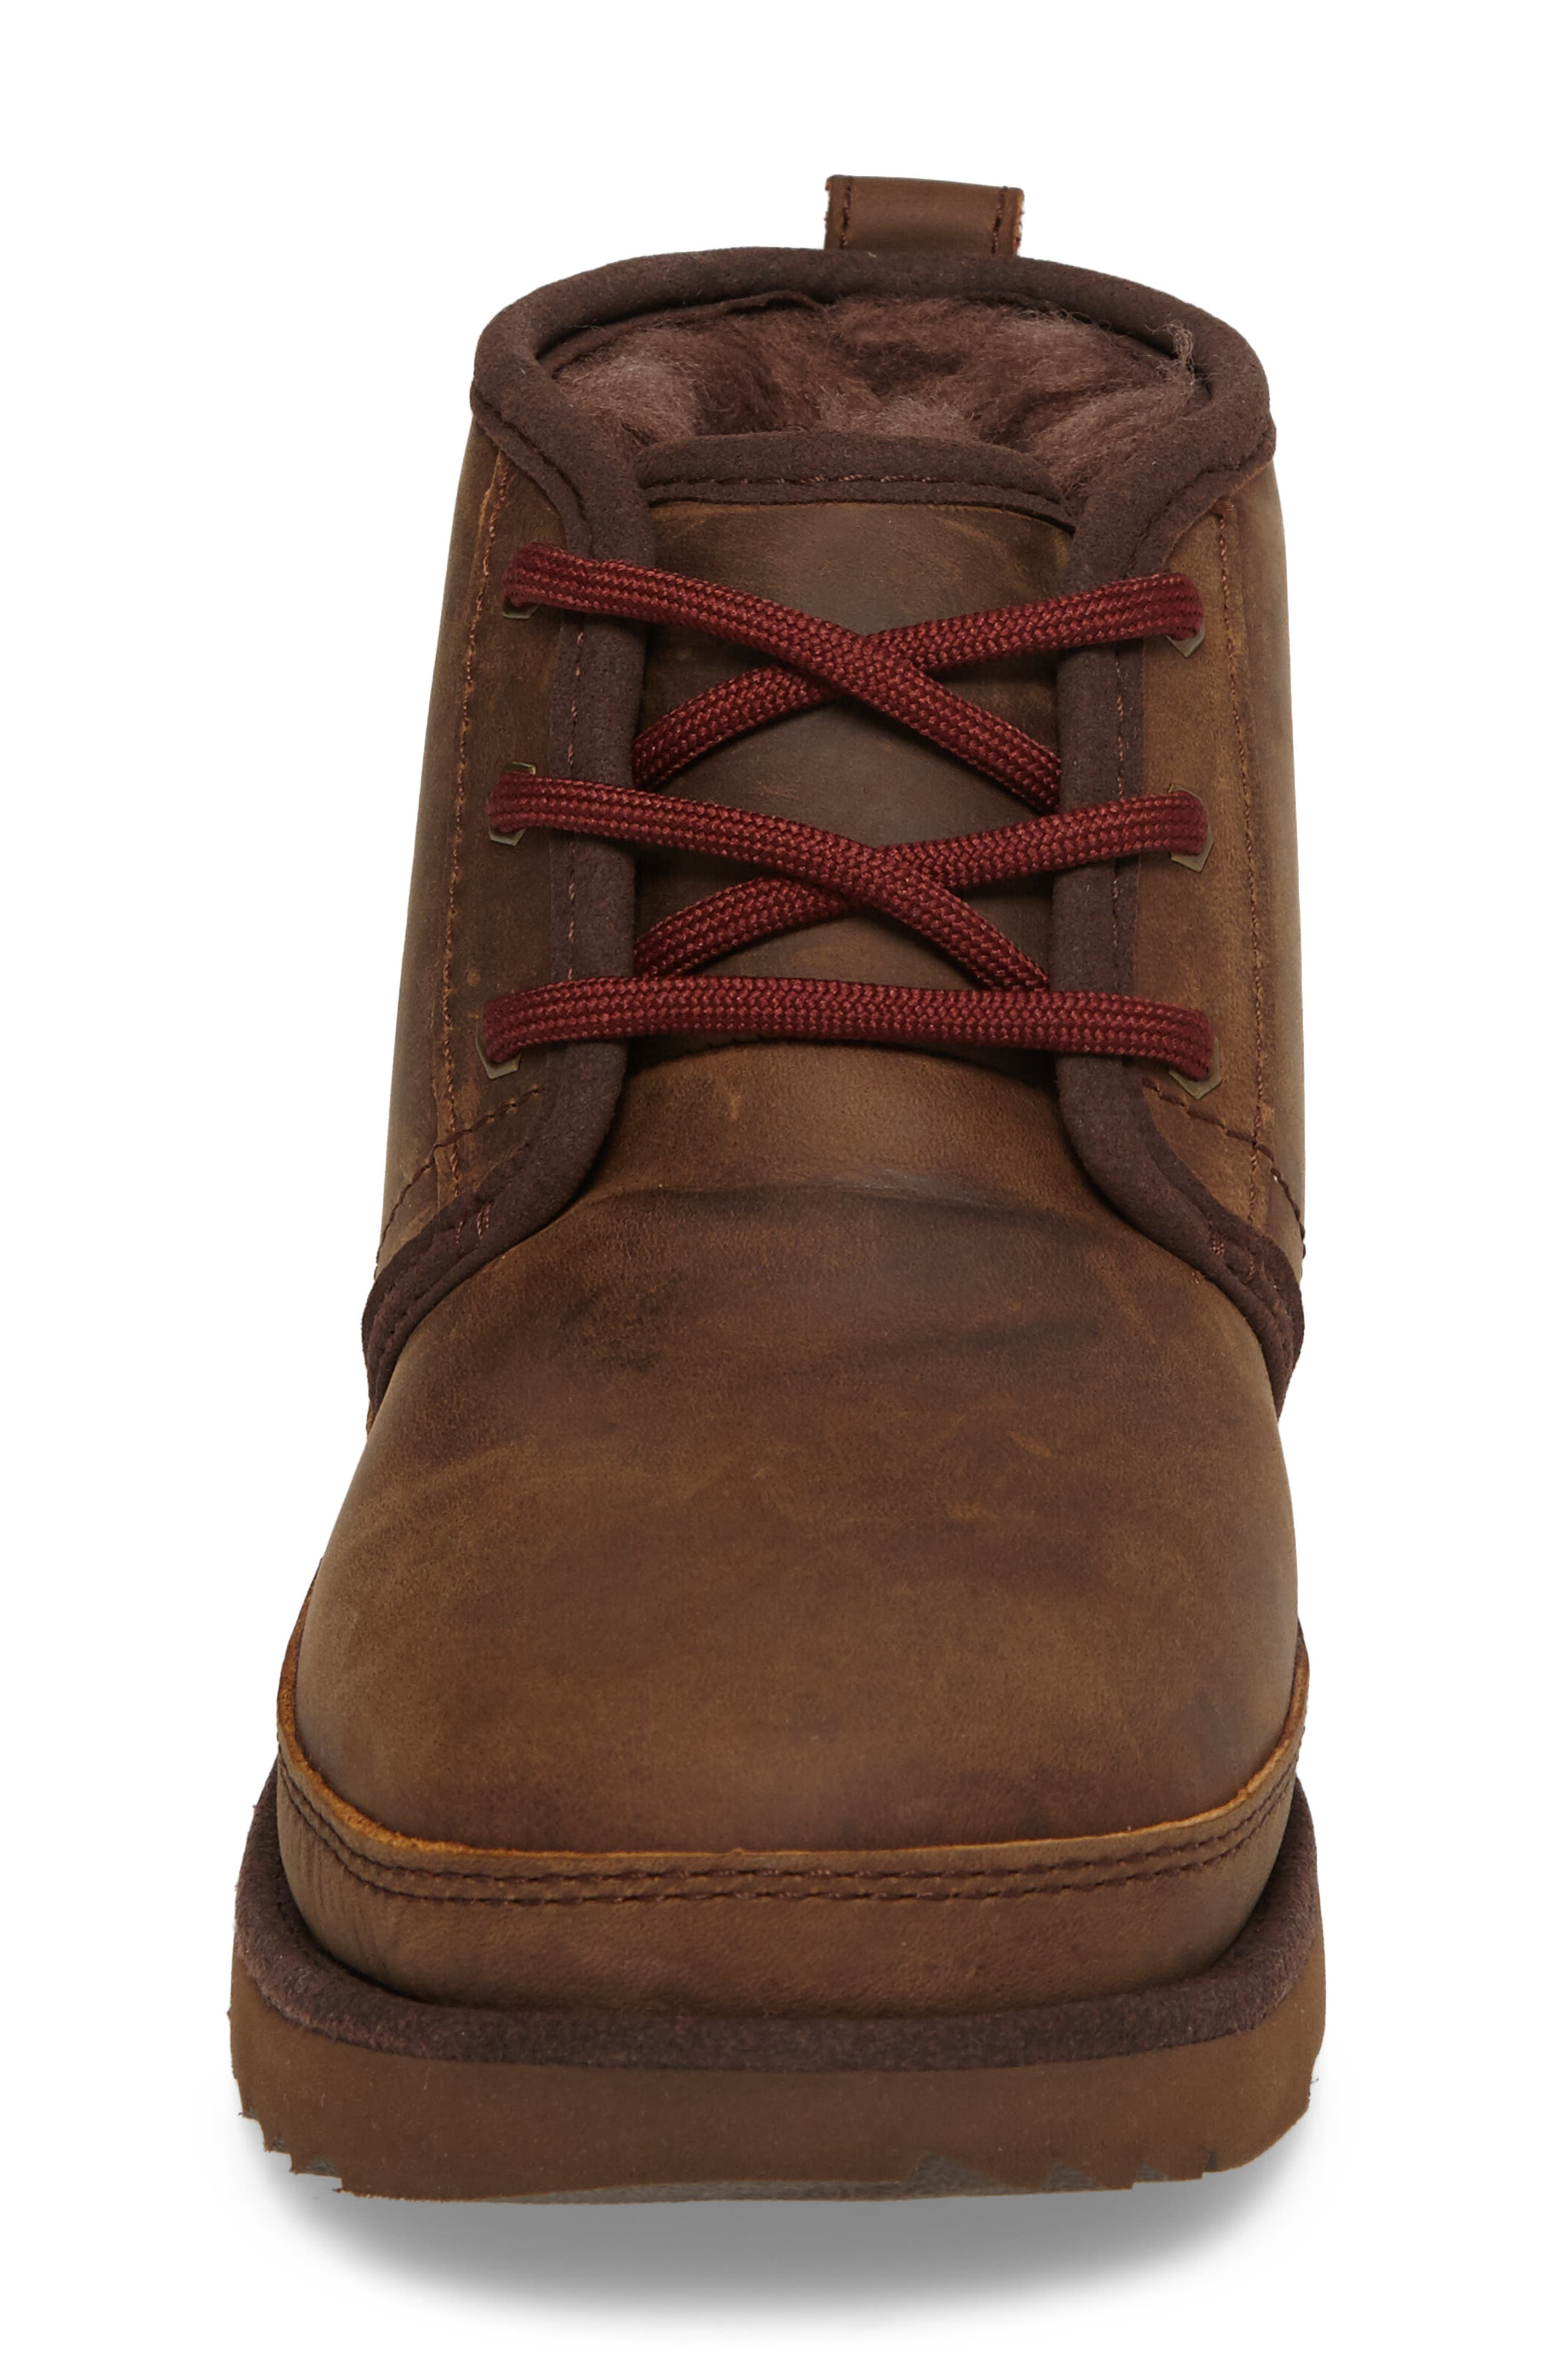 UGG<SUP>®</SUP>, Neumel II Waterproof Chukka, Alternate thumbnail 4, color, GRIZZLY